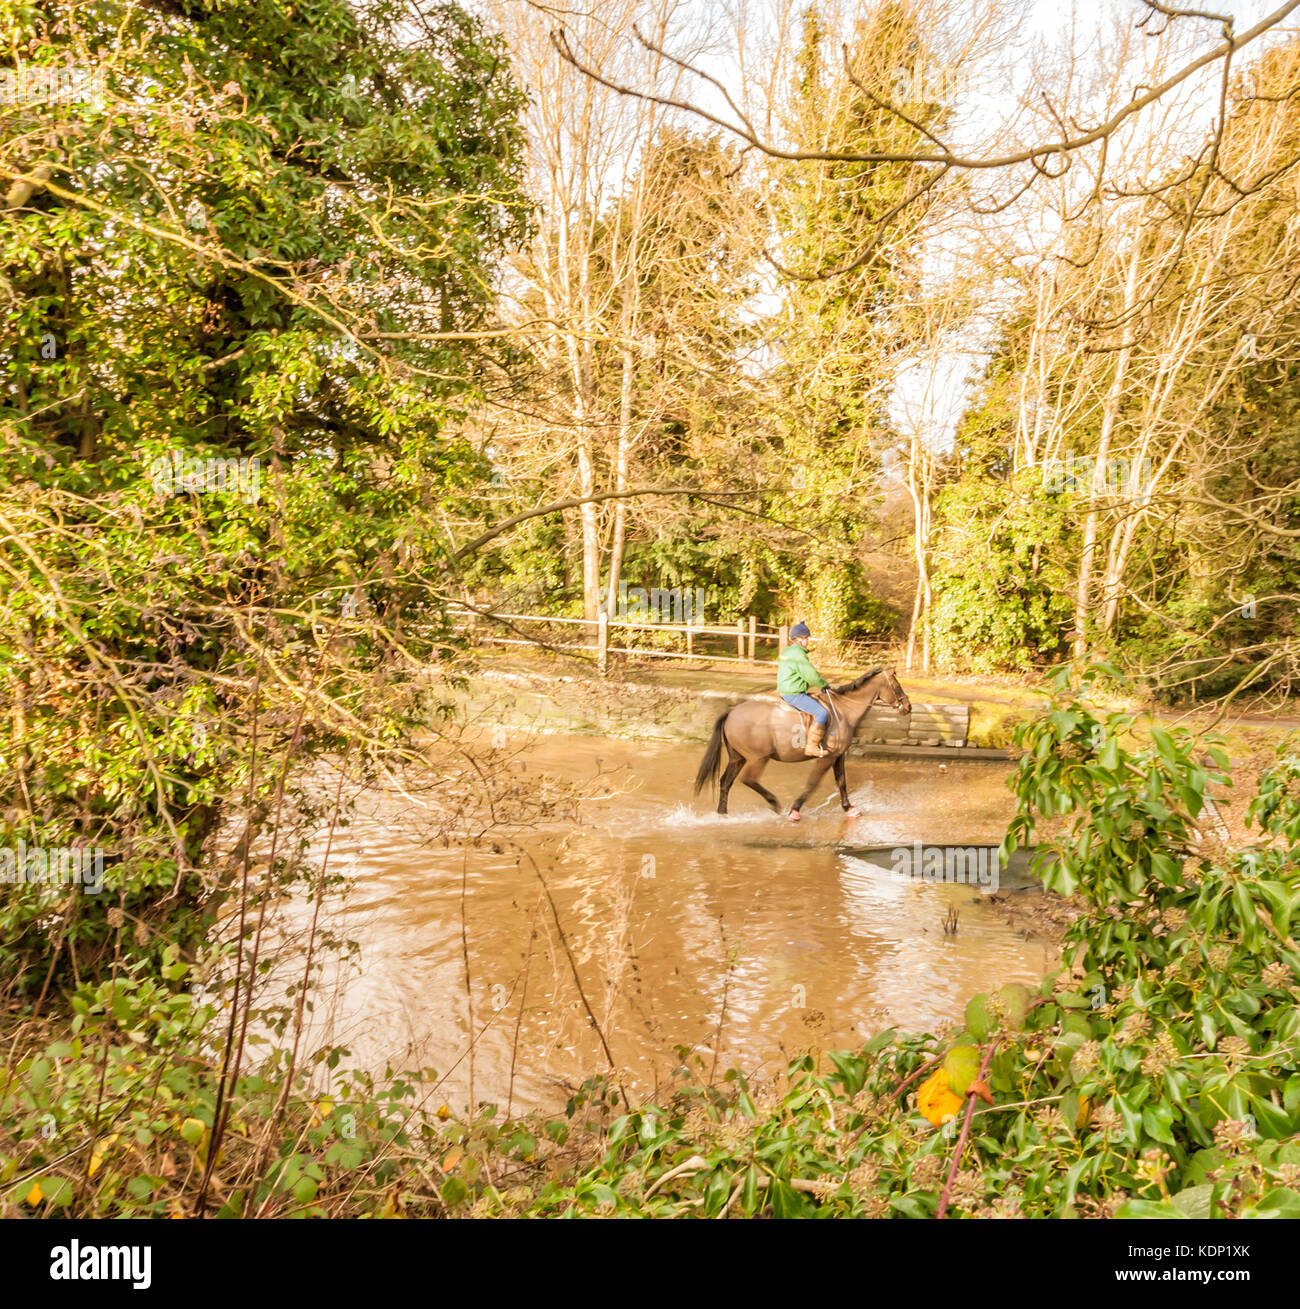 Girl on horse walking through Ford in Rufford Park Nottinghamshire England - Stock Image